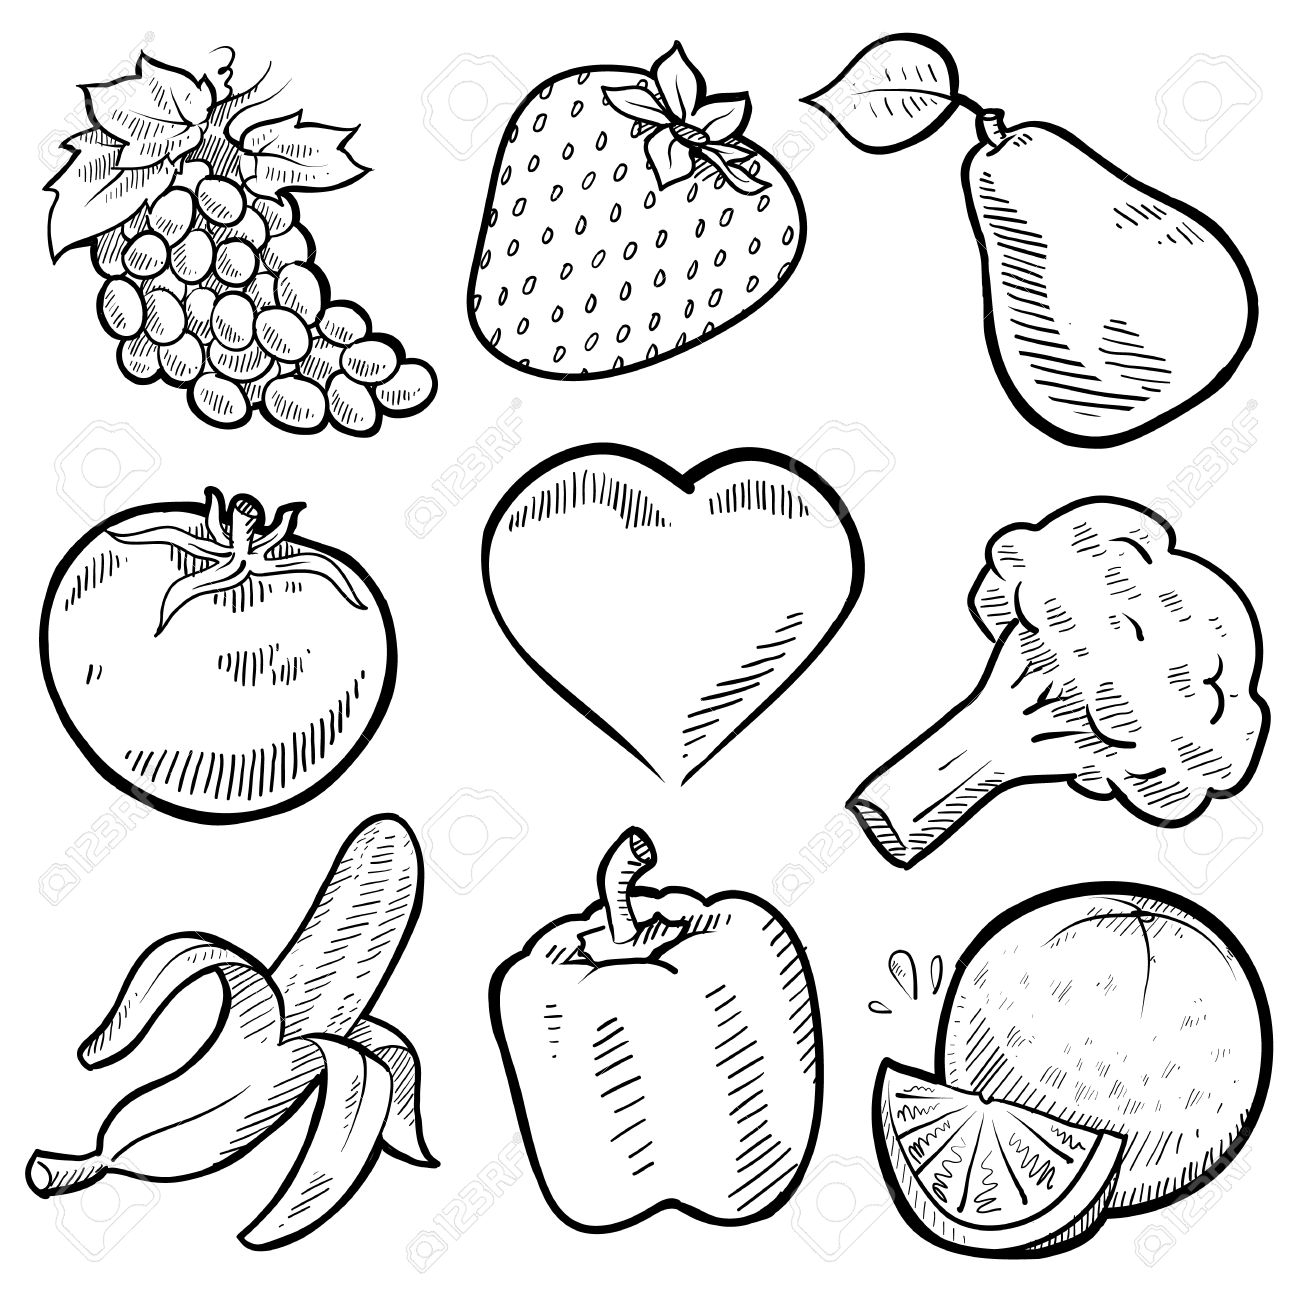 fruits drawings color hand drawn of fresh ripe dragon fruit drawing by iam nee fruits color drawings